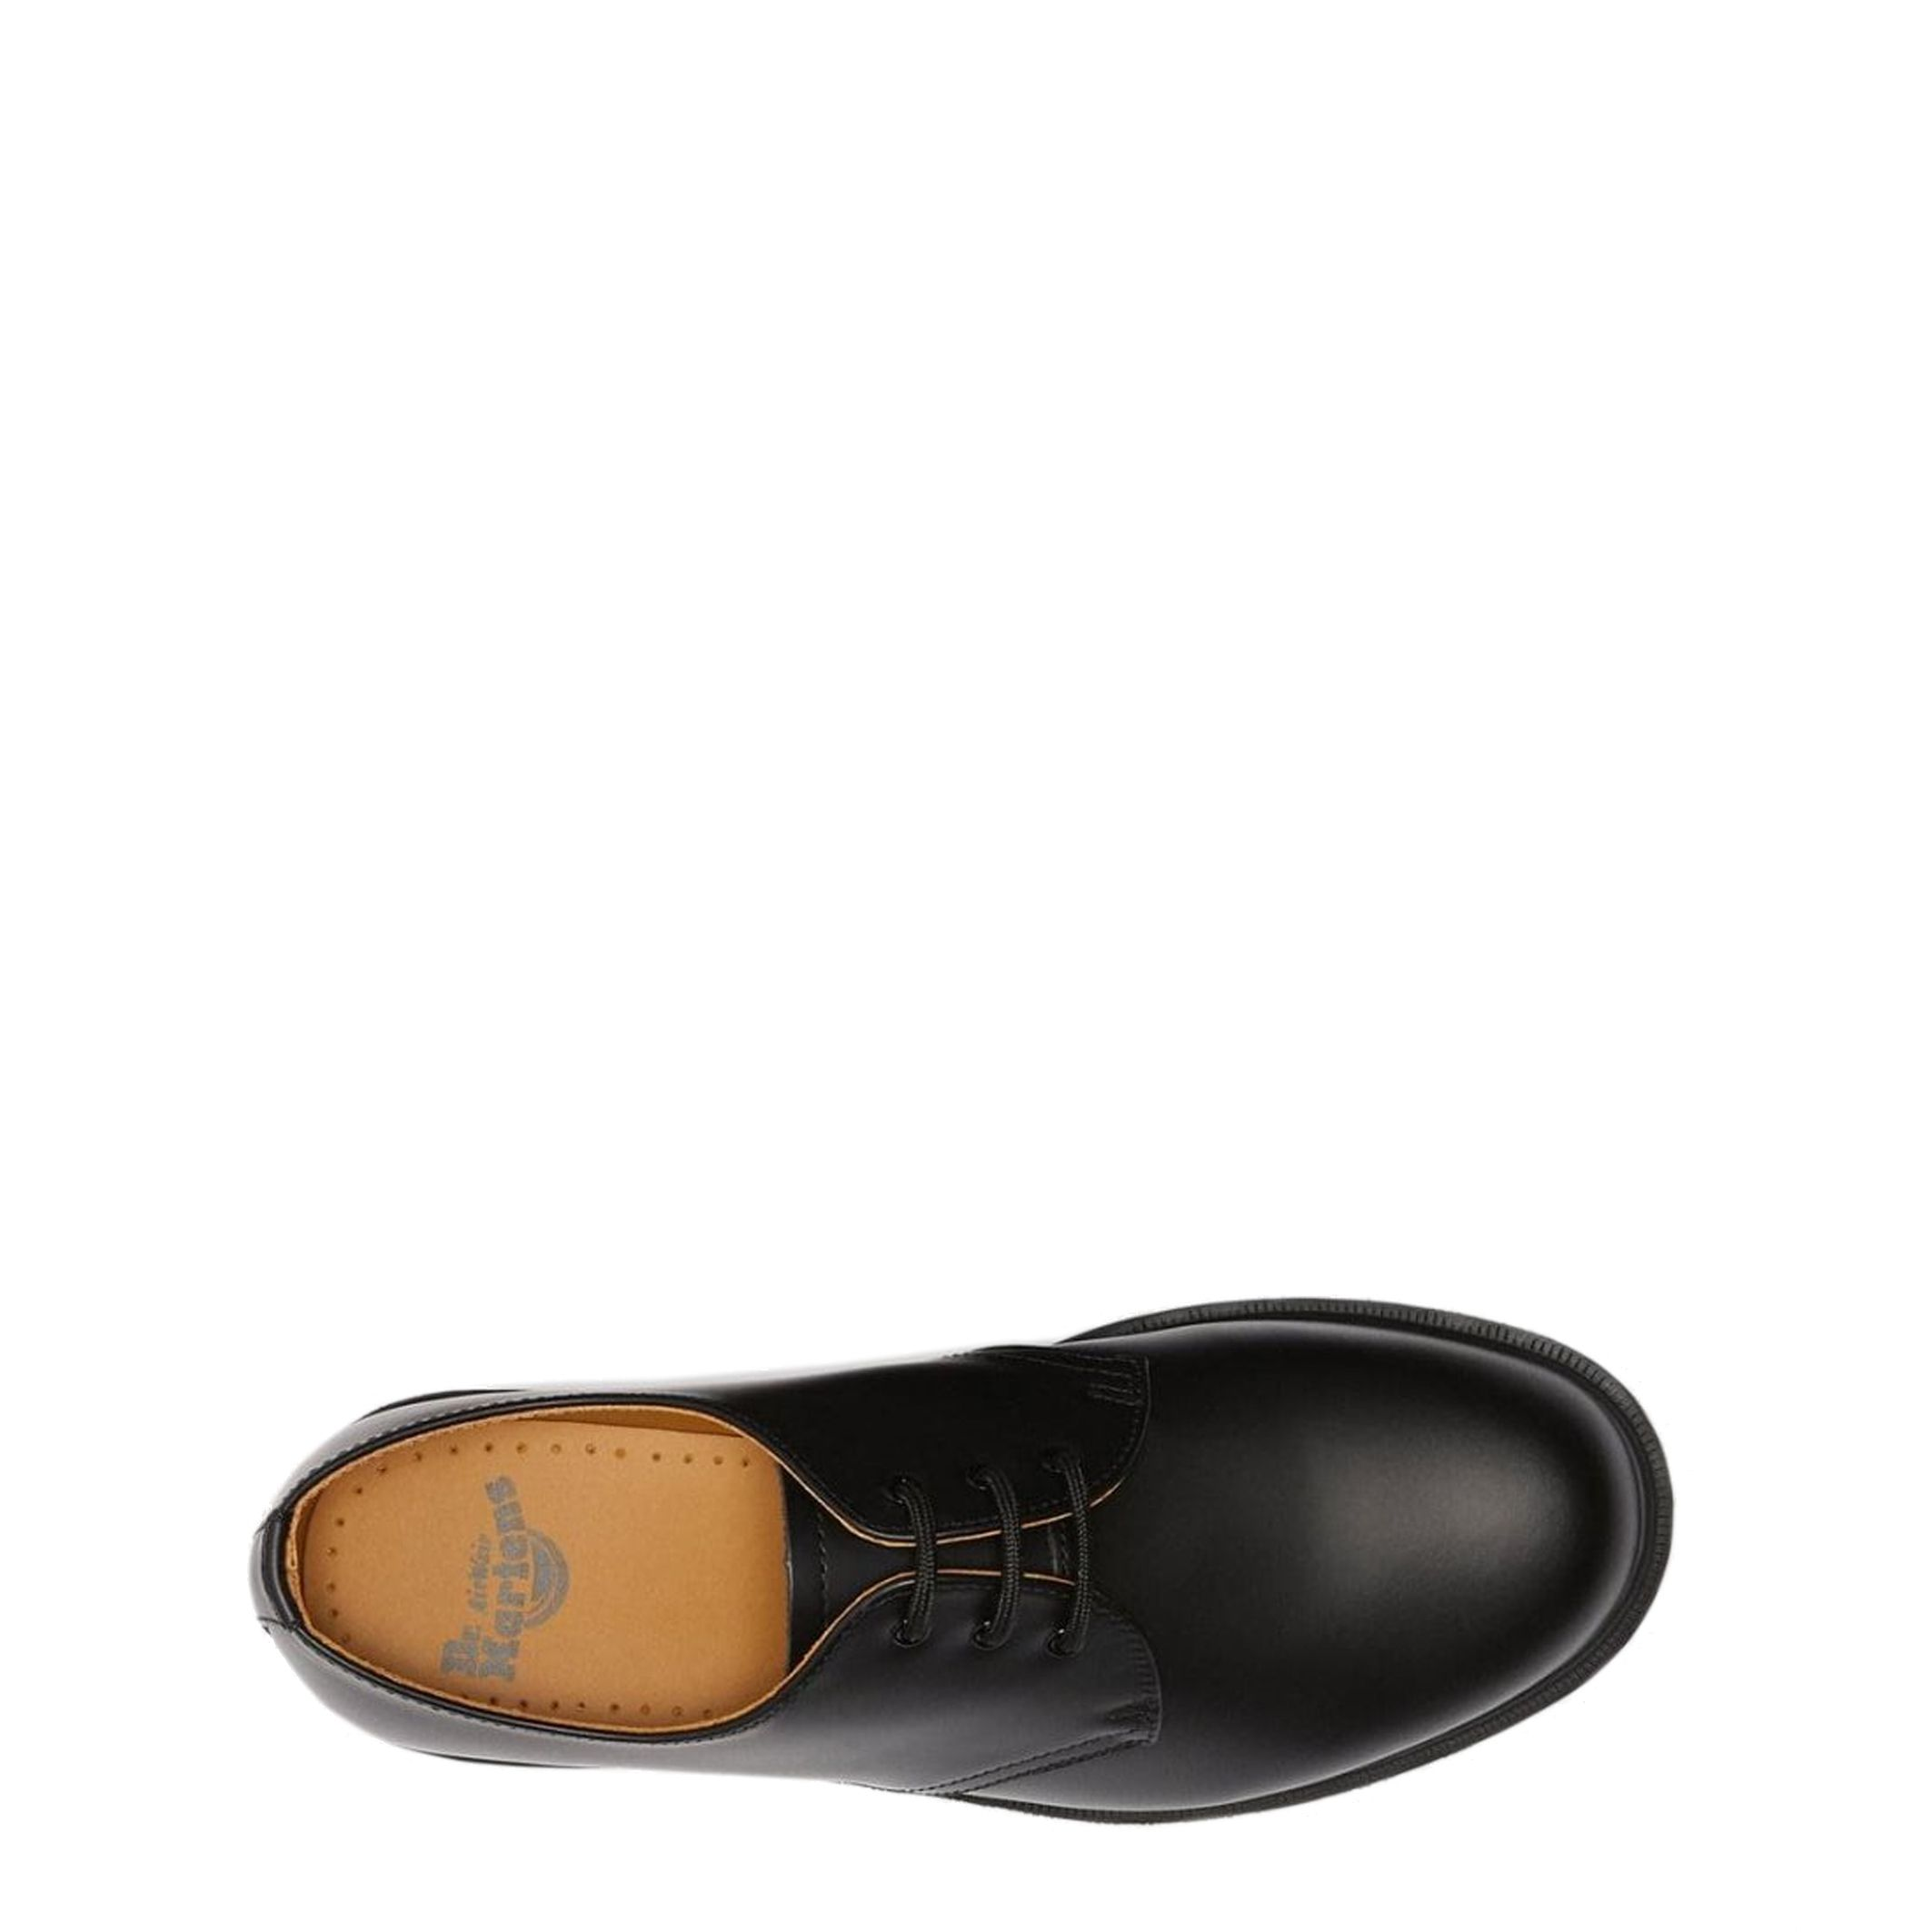 Shoes Dr Martens – 1461_PLAIN_WELT